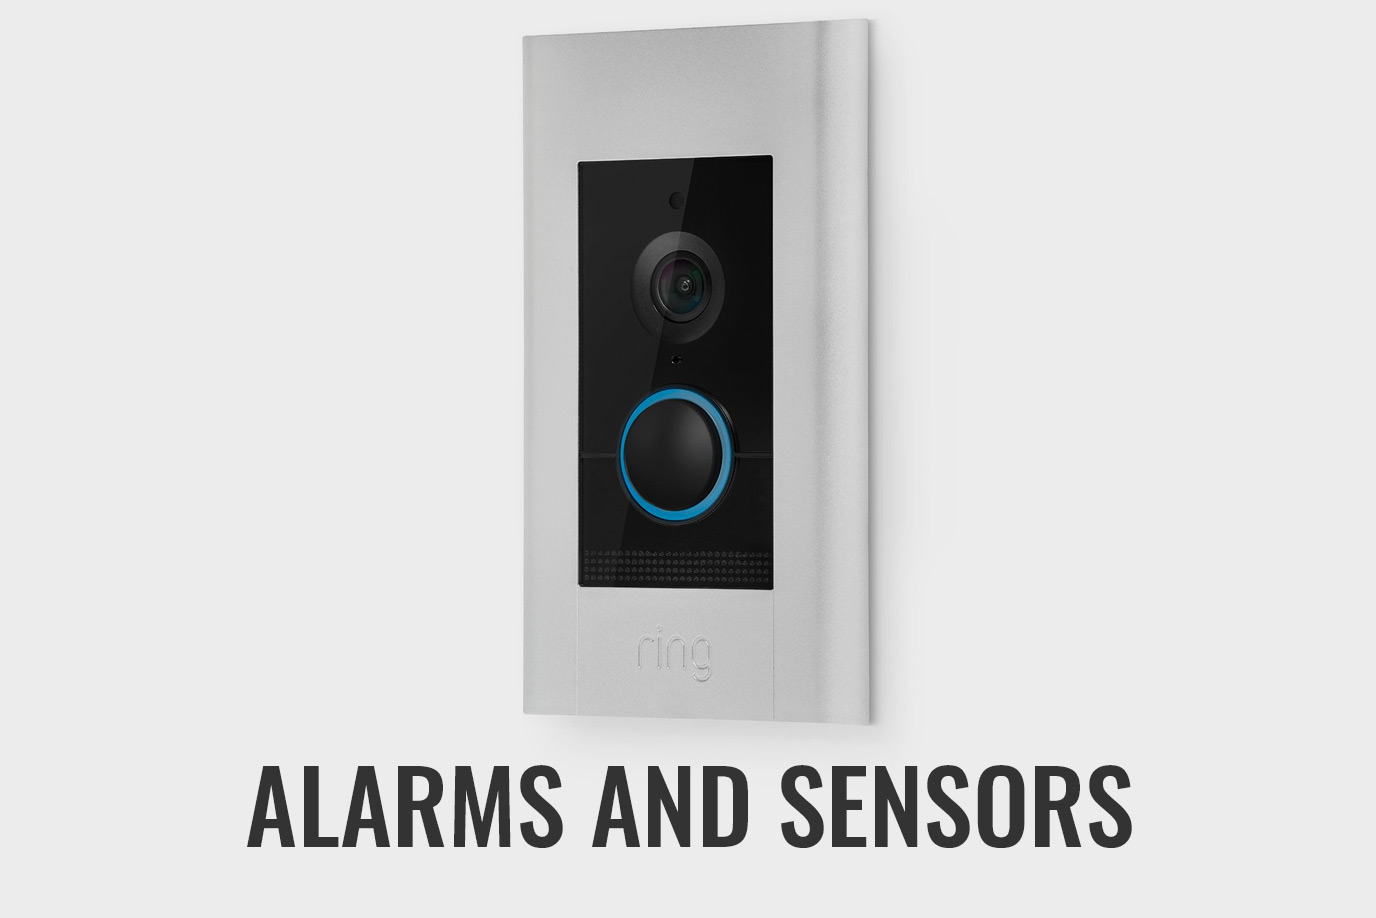 Alarms and sensors